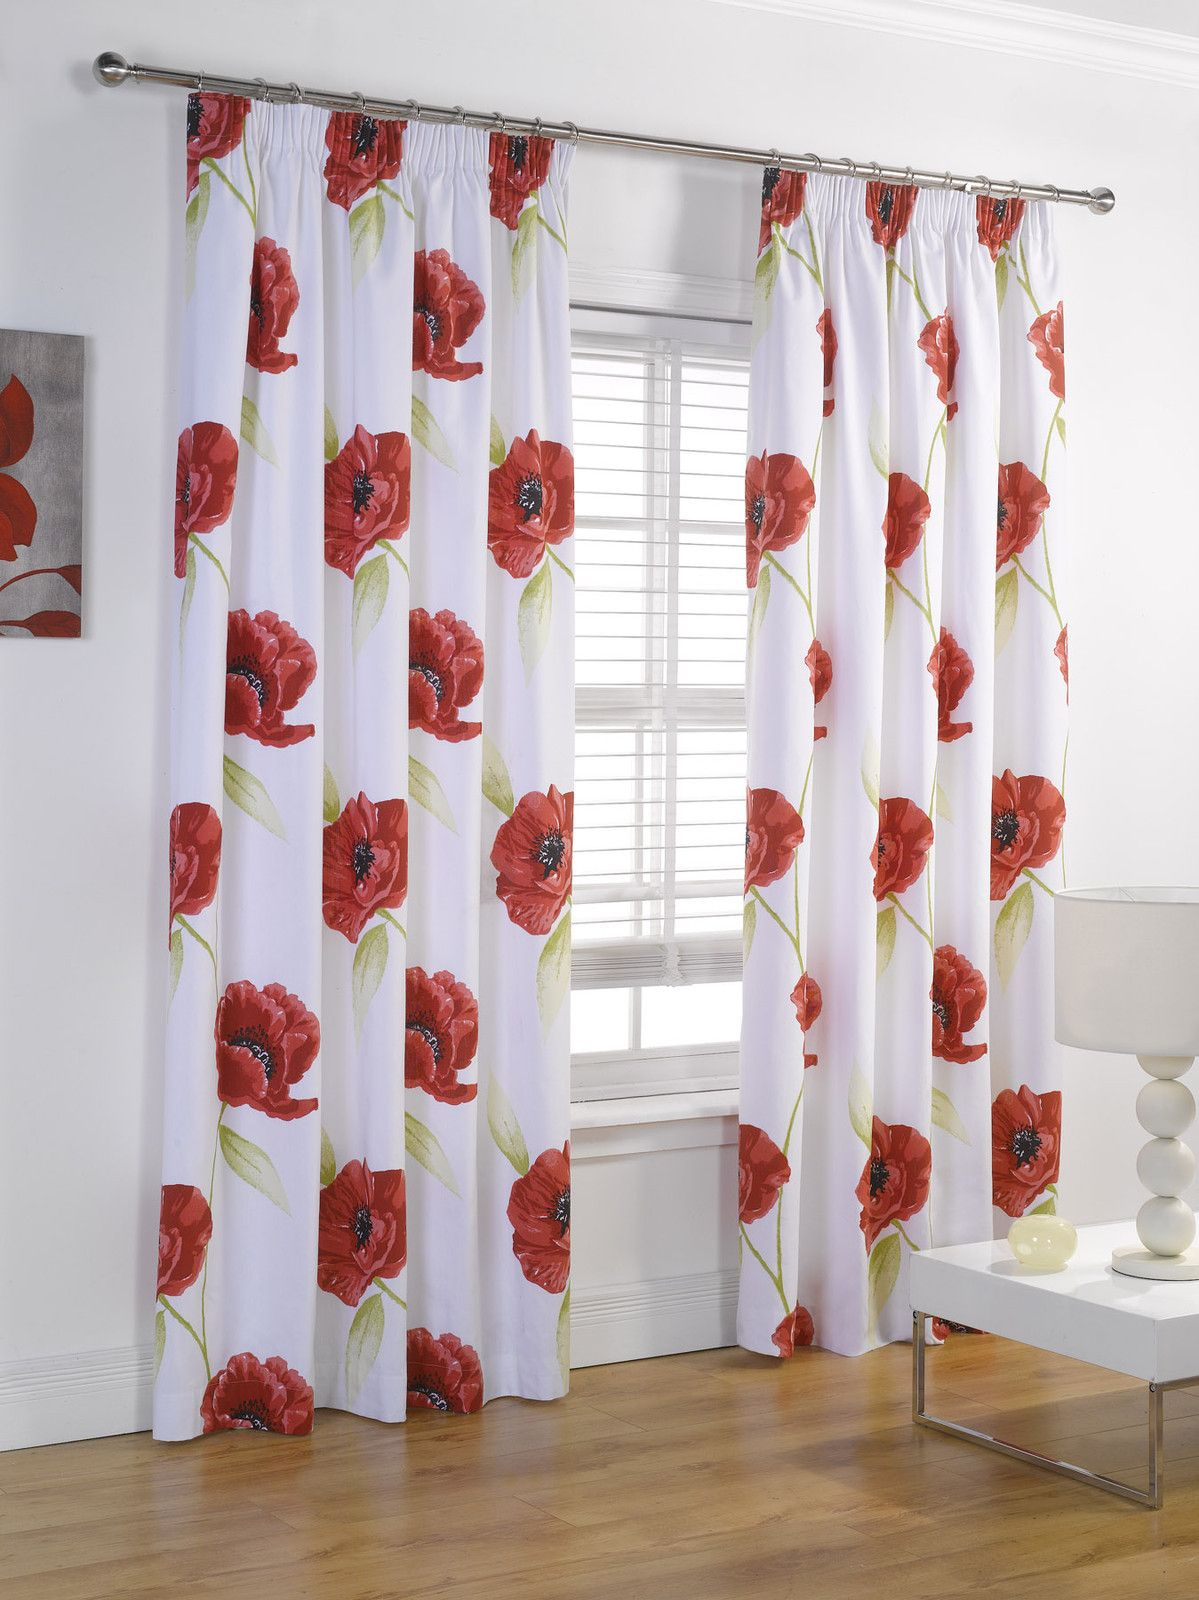 Fully Lined Red Amp Cream Floral Poppy Print Curtains In 8